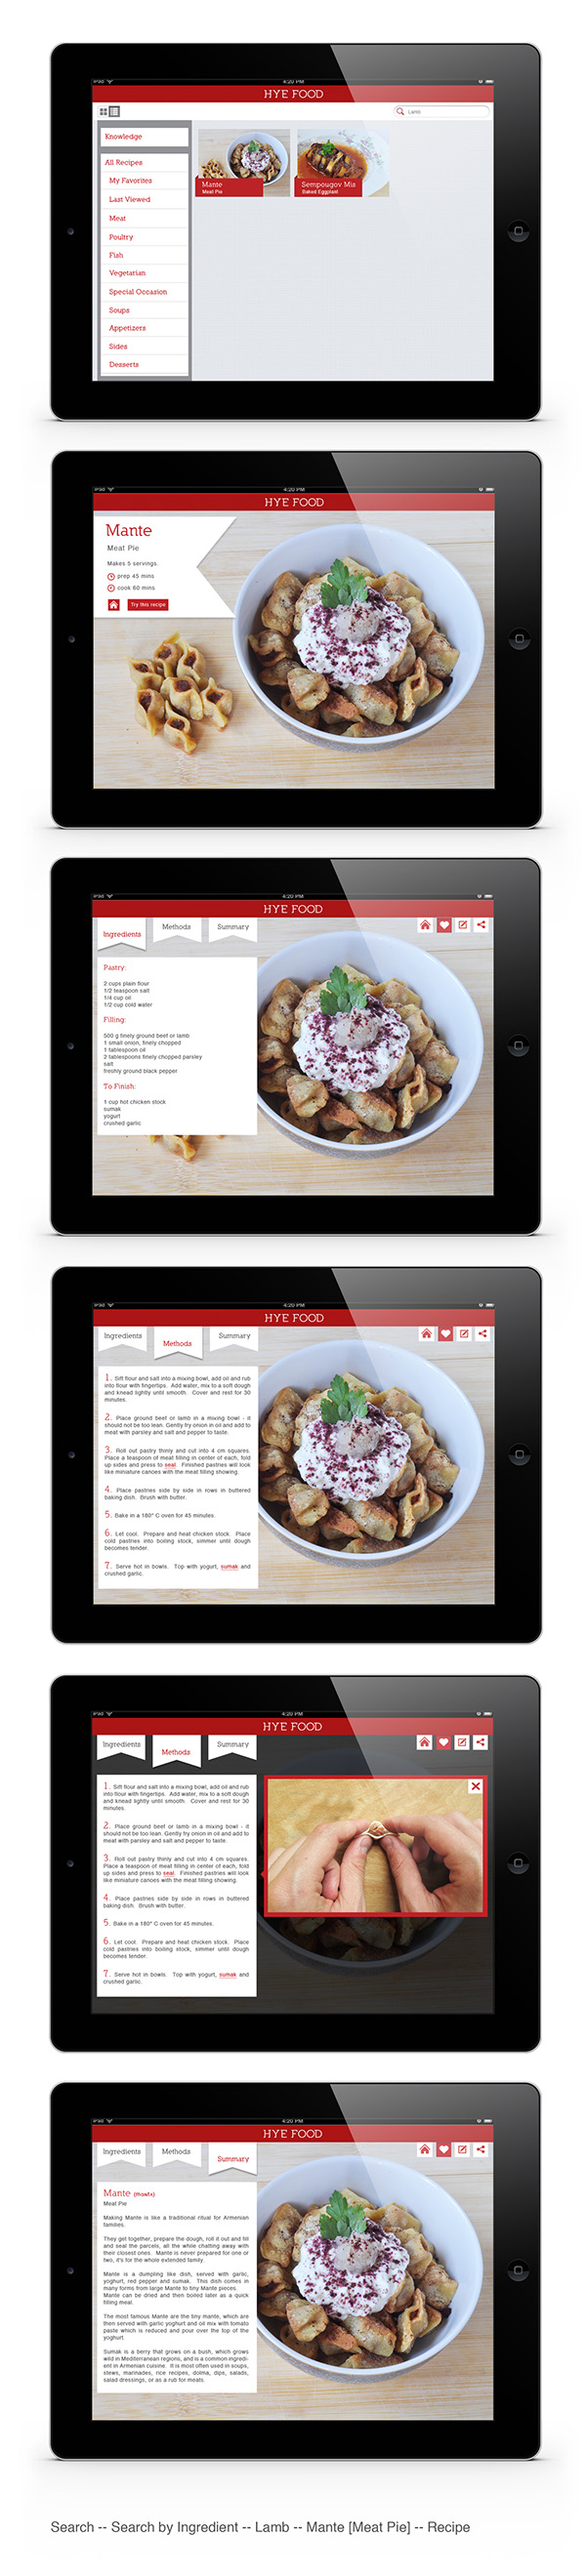 Hye food armenian cooking ipad app on pantone canvas gallery for Armenian cuisine cookbook